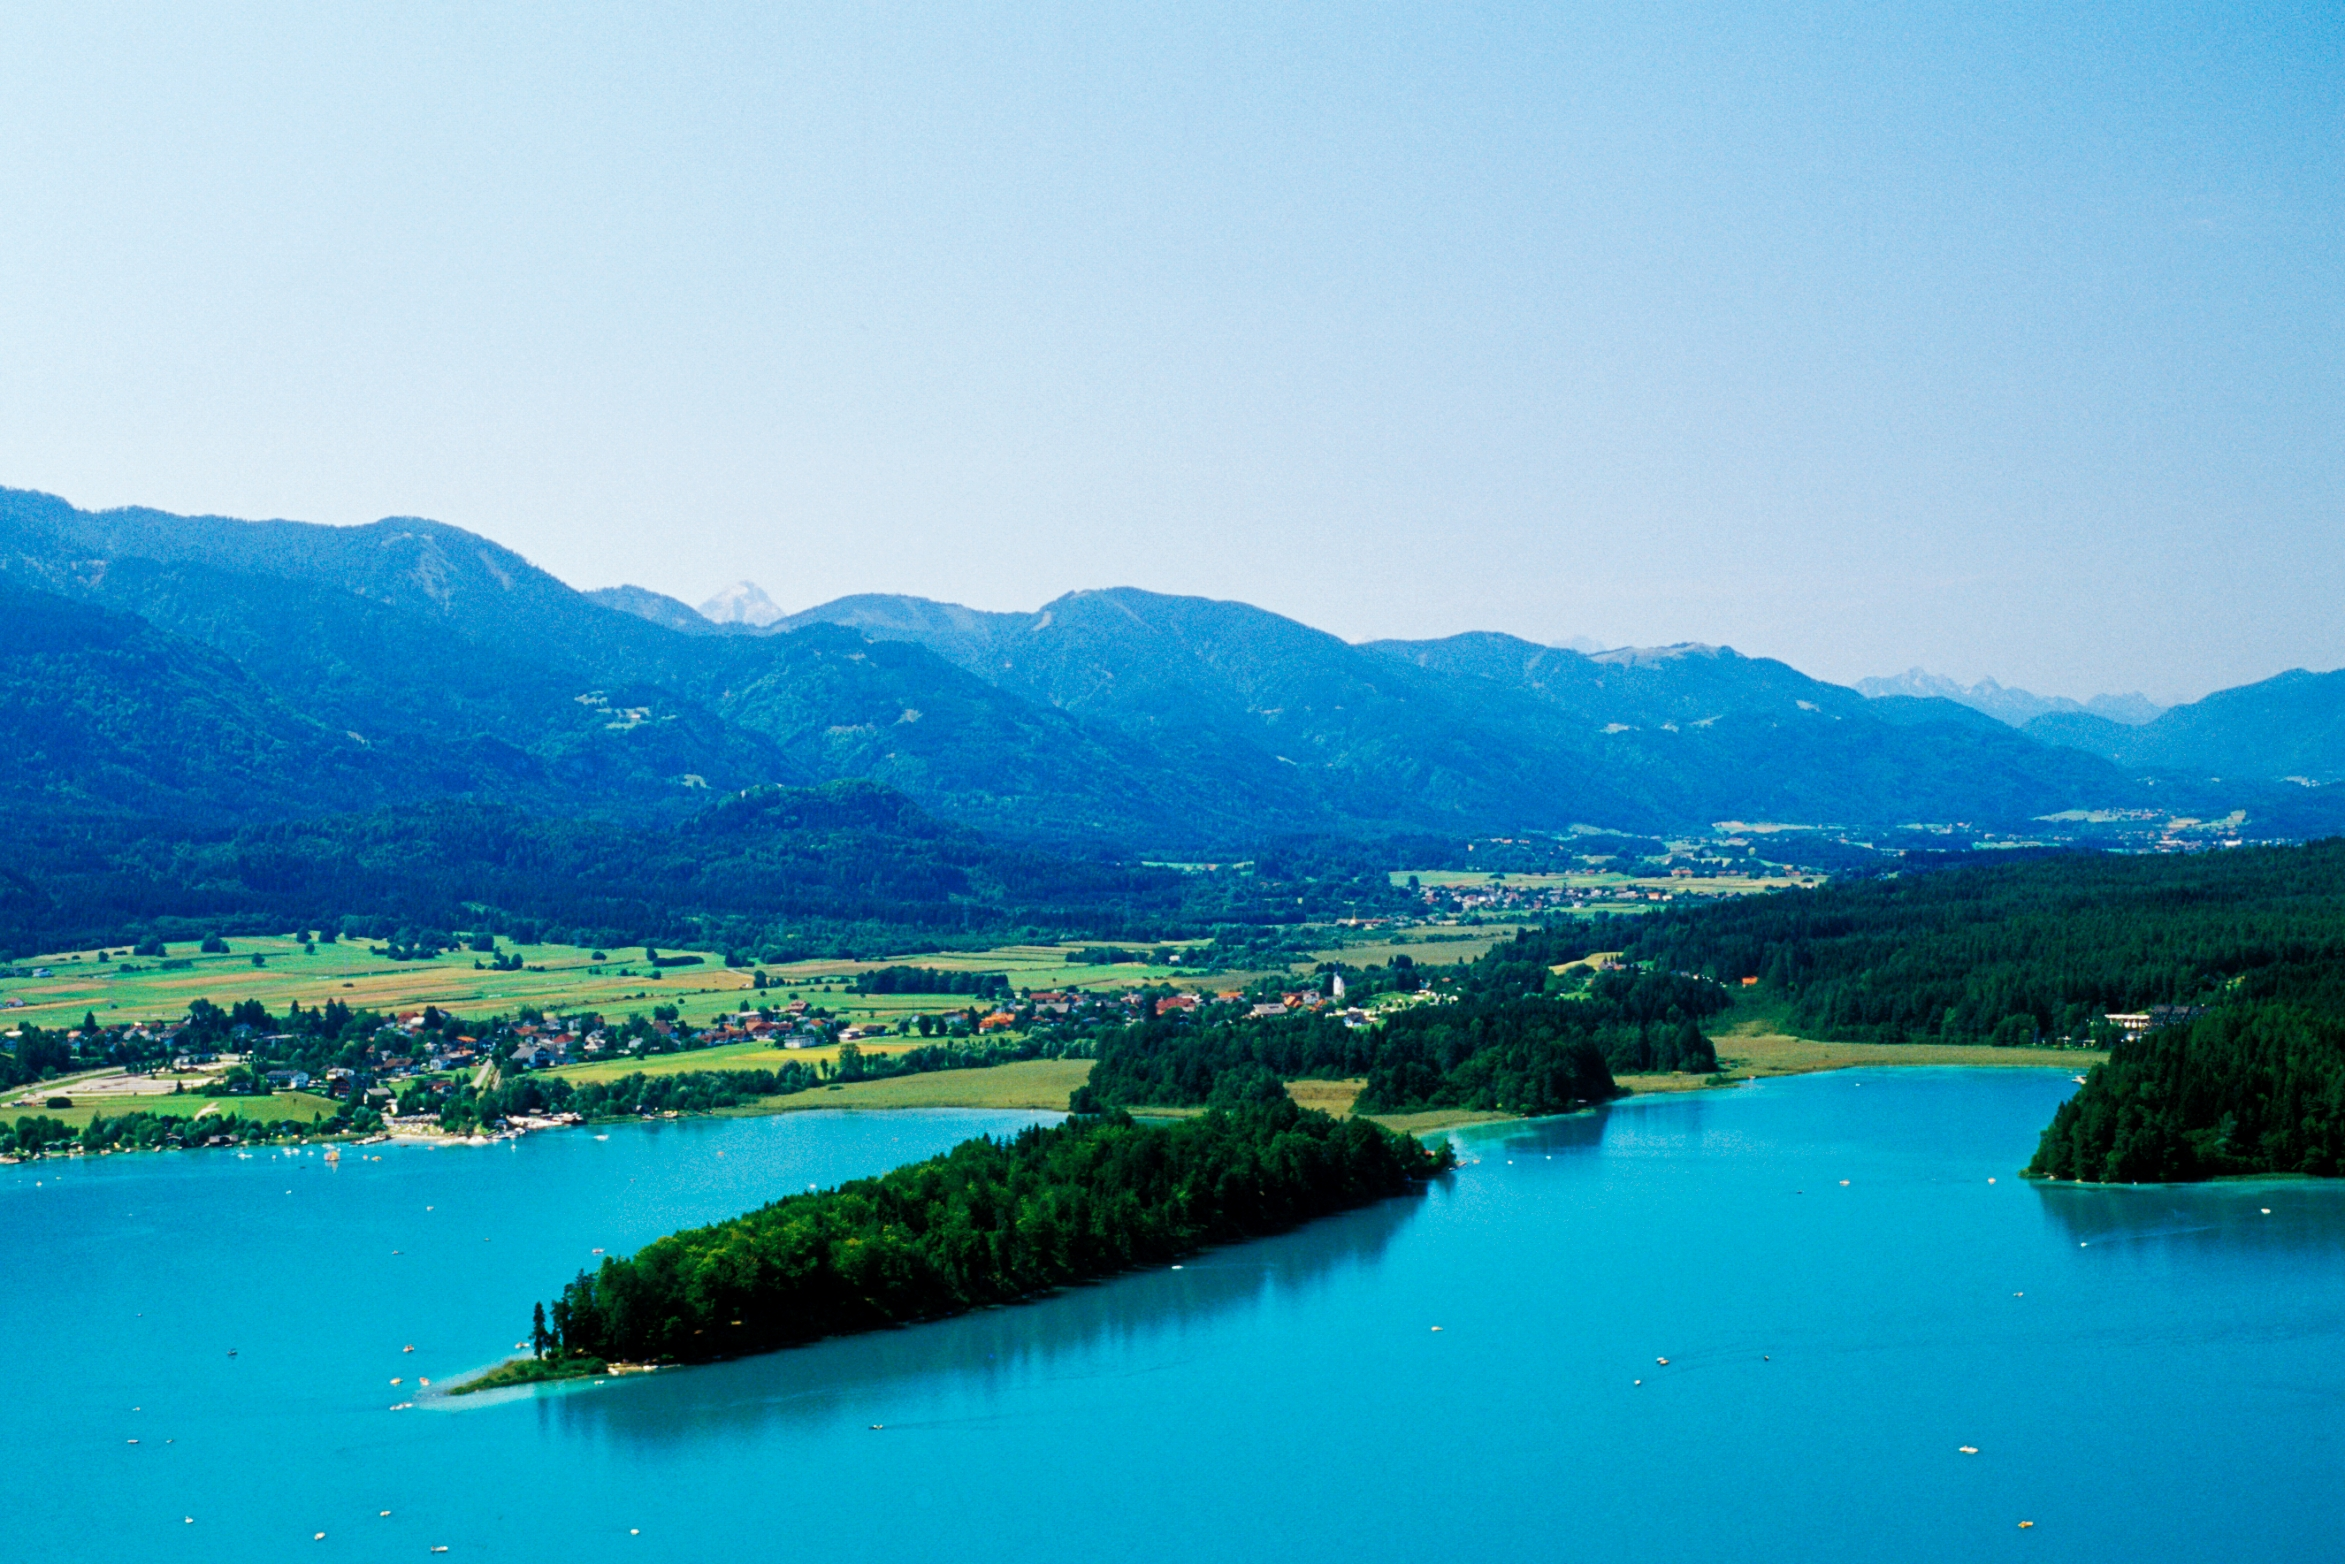 the turquoise-blue Faakersee is one of the most popular bathing lakes in Carinthia